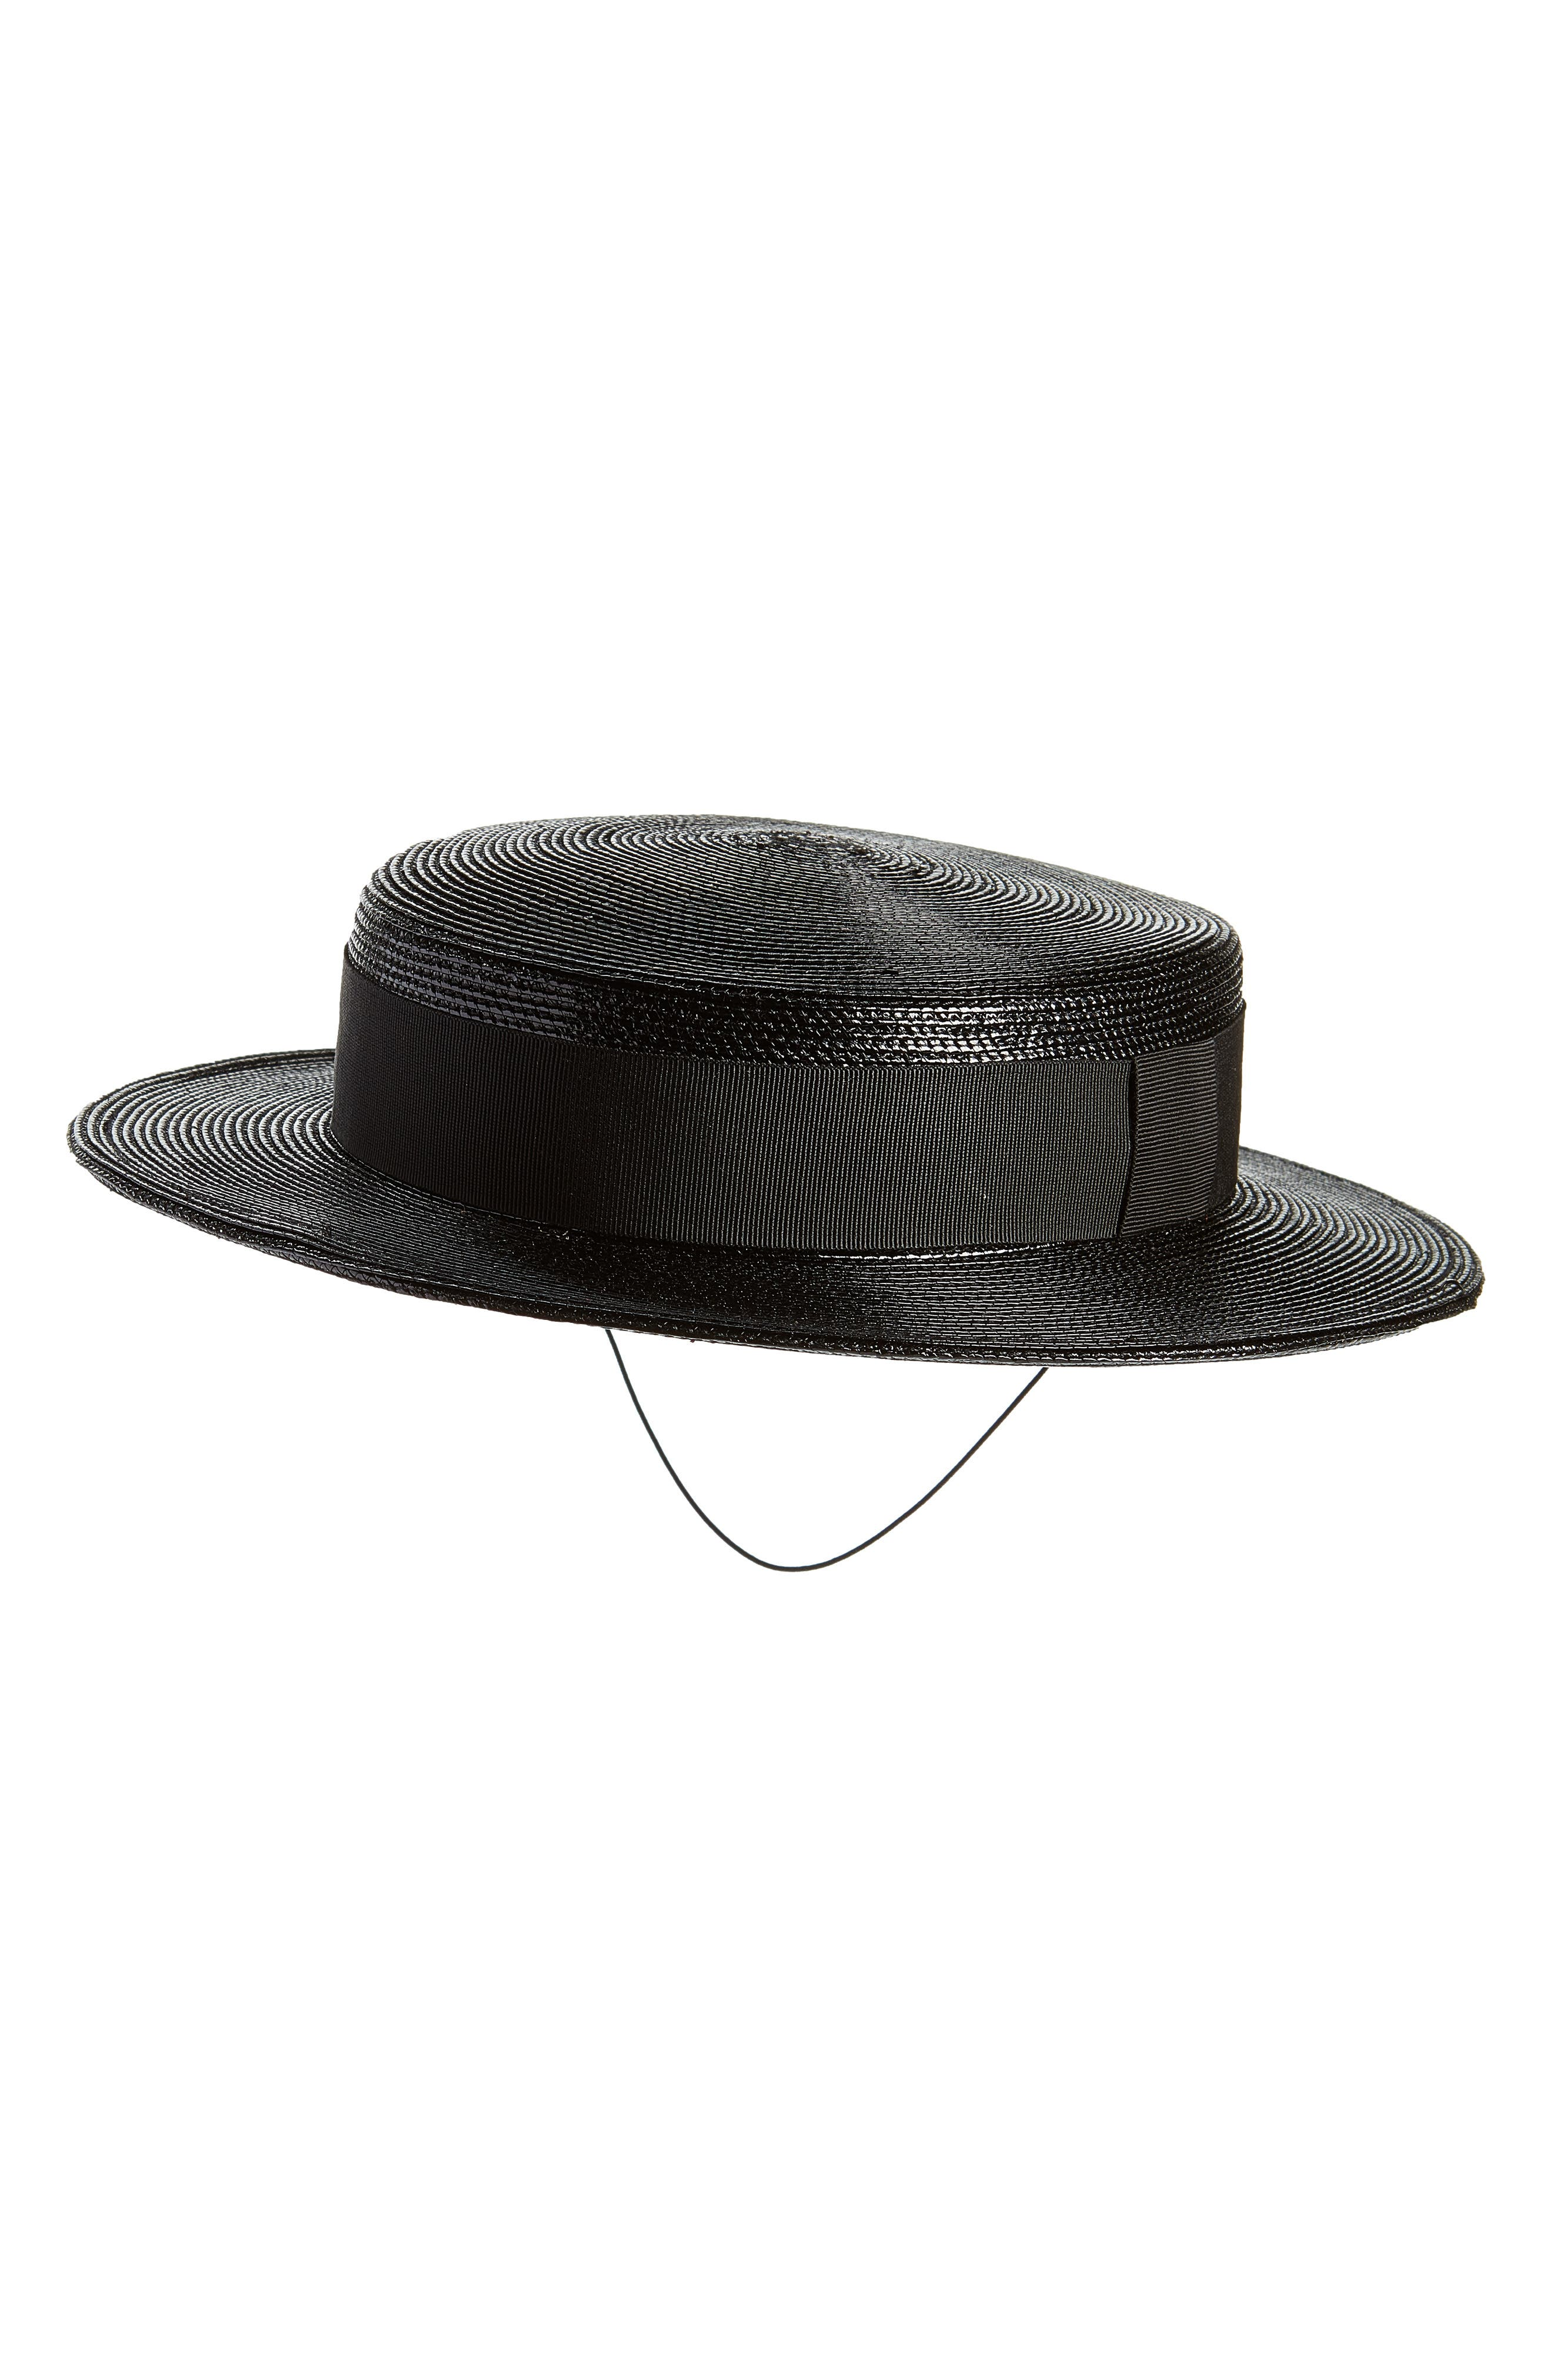 SAINT LAURENT,                             Petite Boater Hat,                             Main thumbnail 1, color,                             001